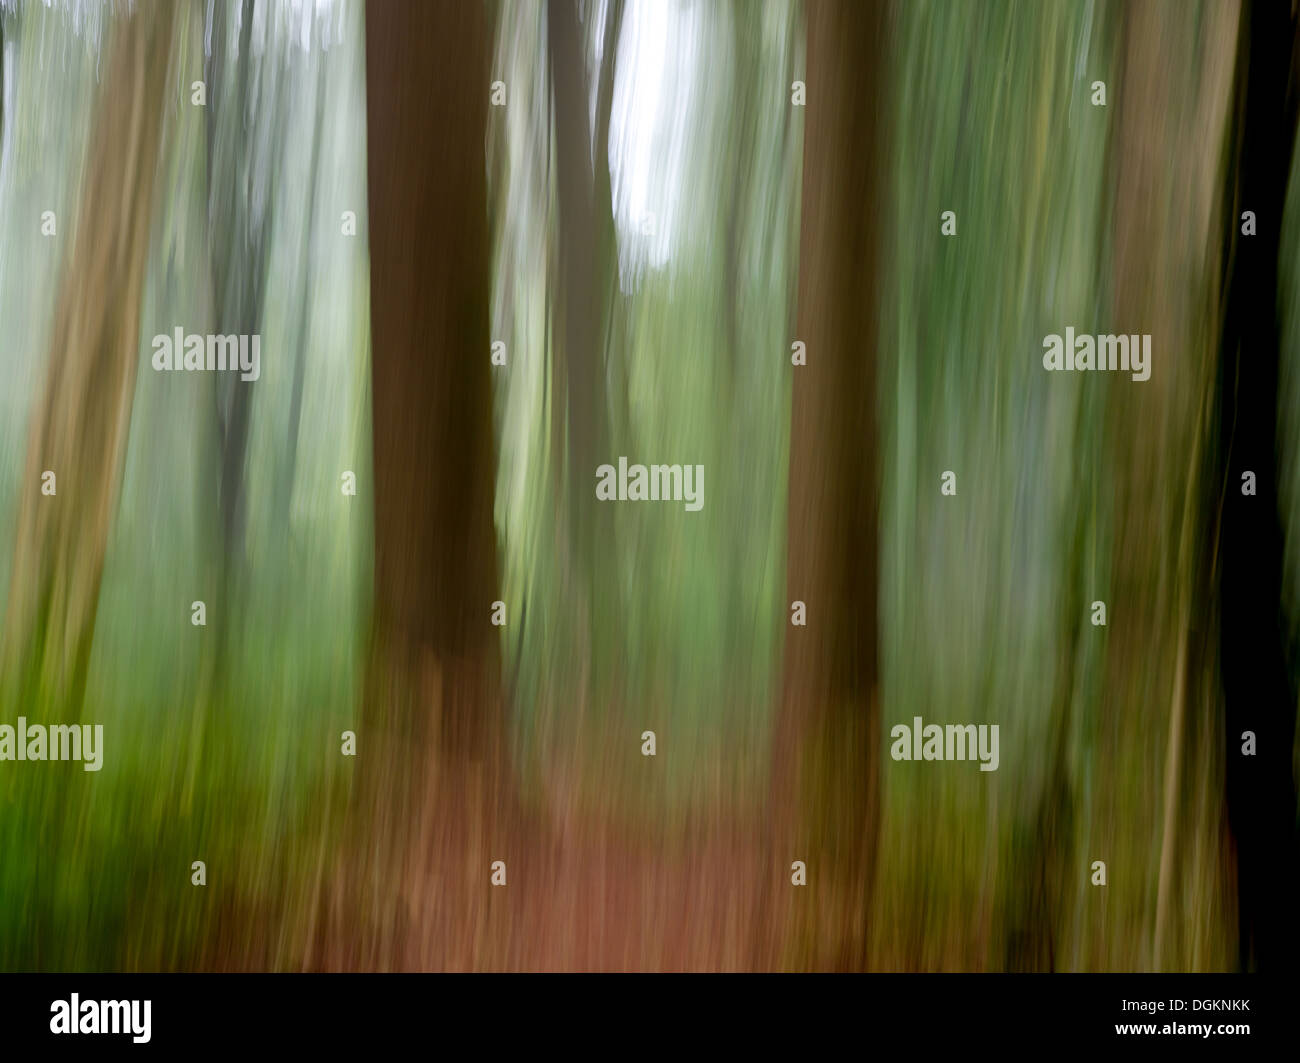 Abstract image of rain forest under story - Stock Image